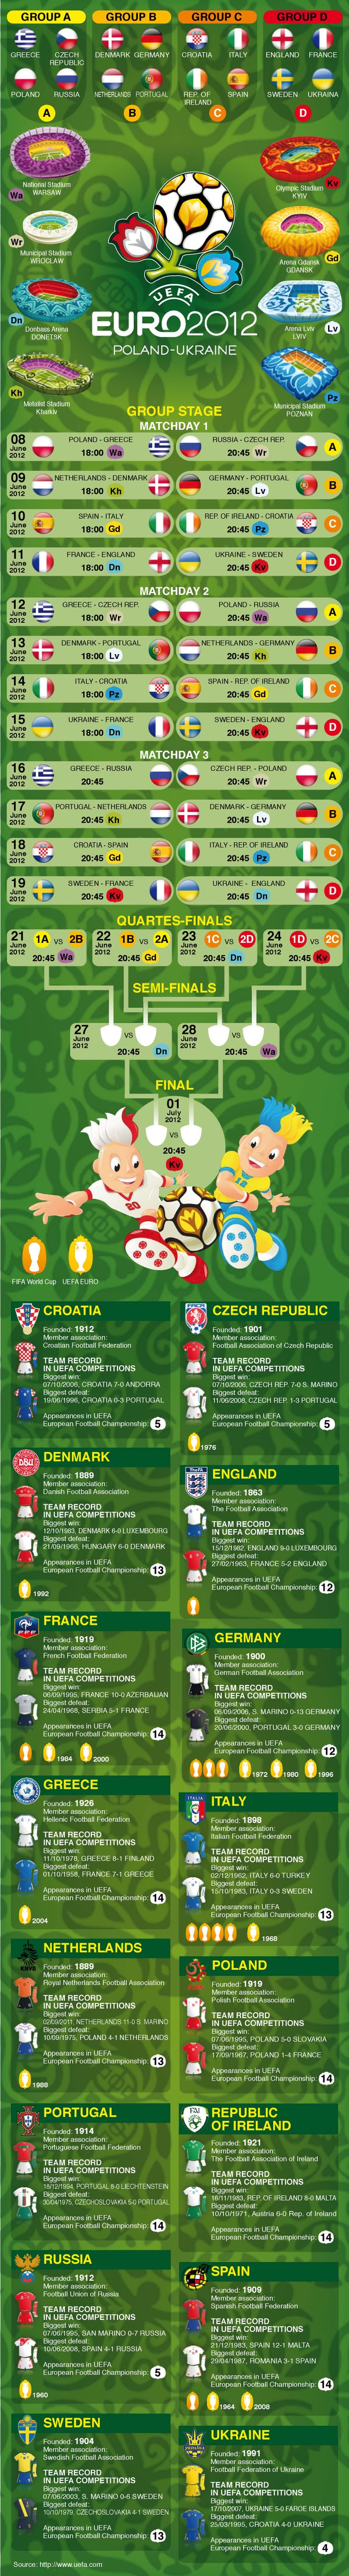 INFOGRAPHIC: EURO 2012 IN REVIEW - THE END